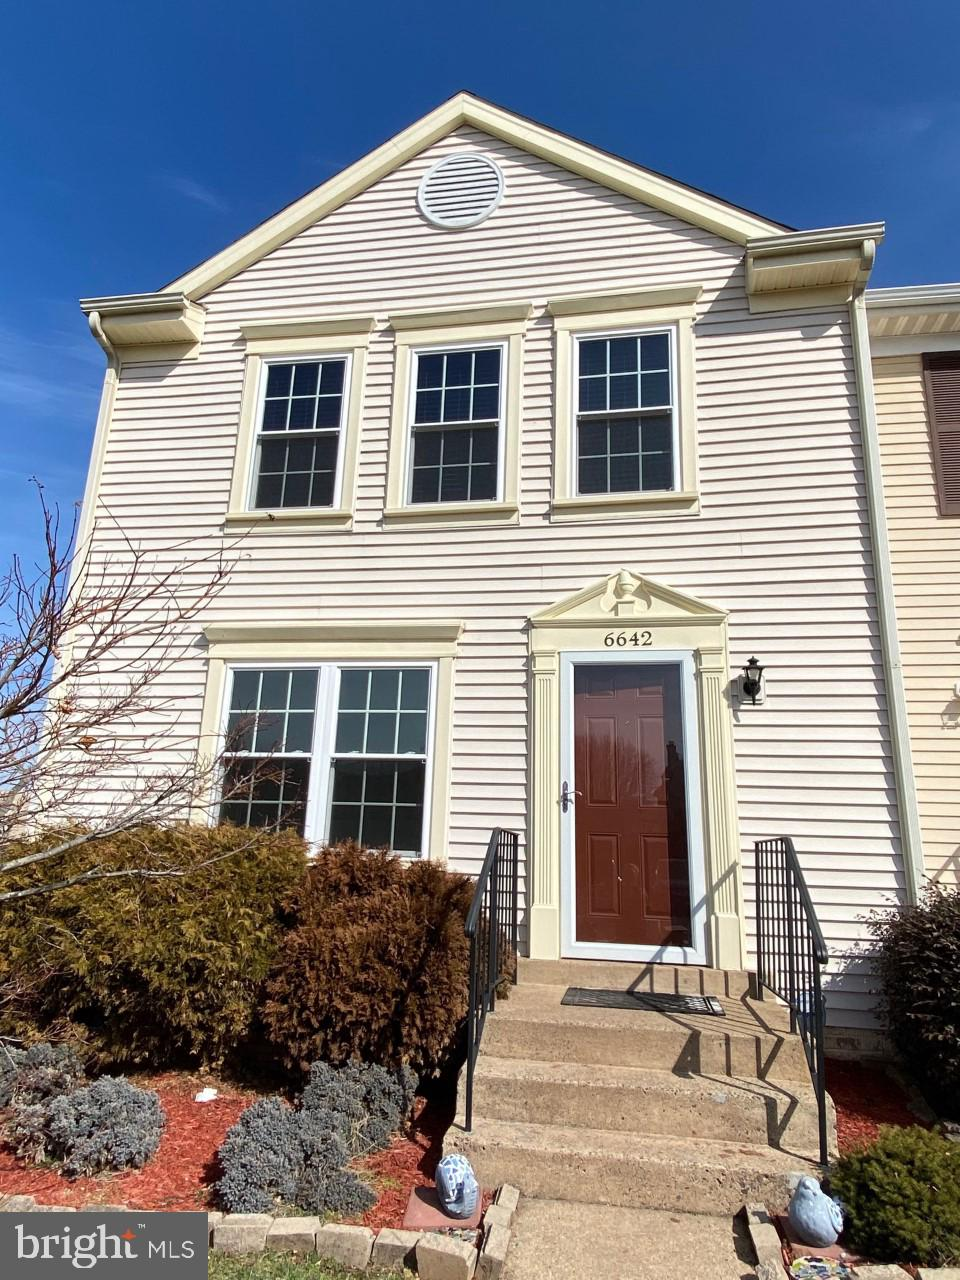 Gorgeous end unit ready for new owner with 3 bedrooms, 2 full baths and 2 half baths. Cul-de-sac lot